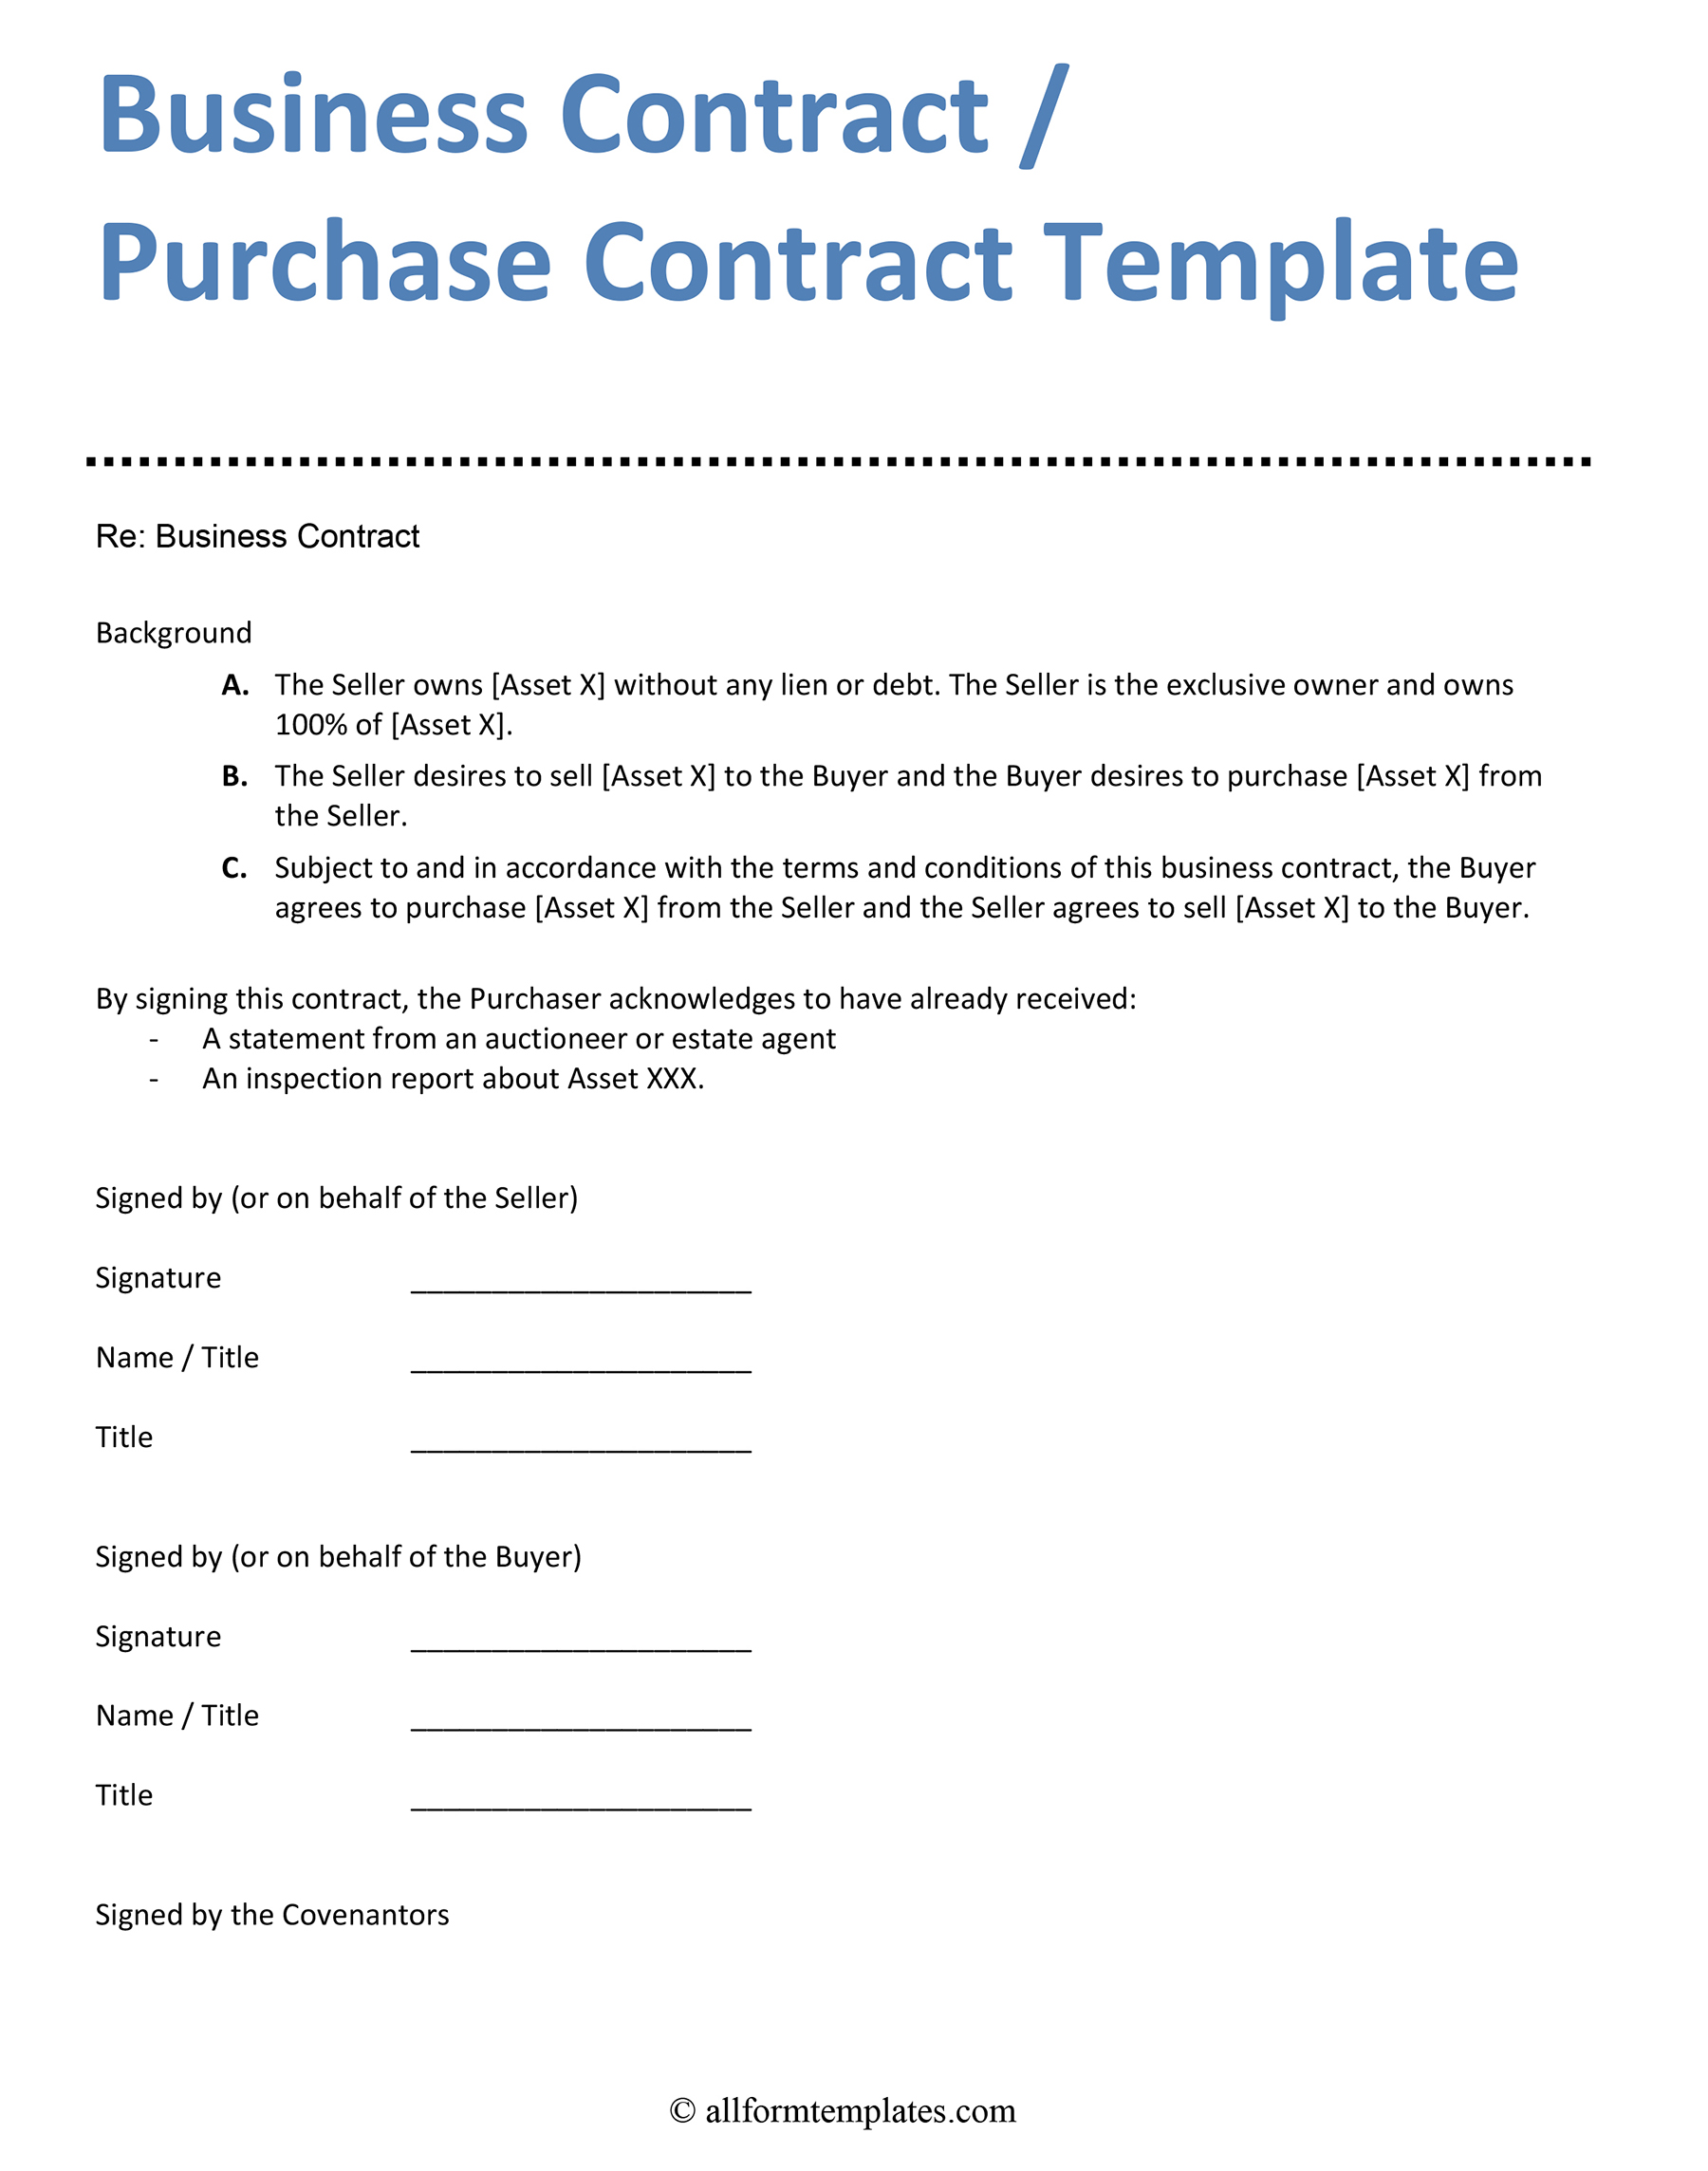 Contract-Template-Business-01-HD